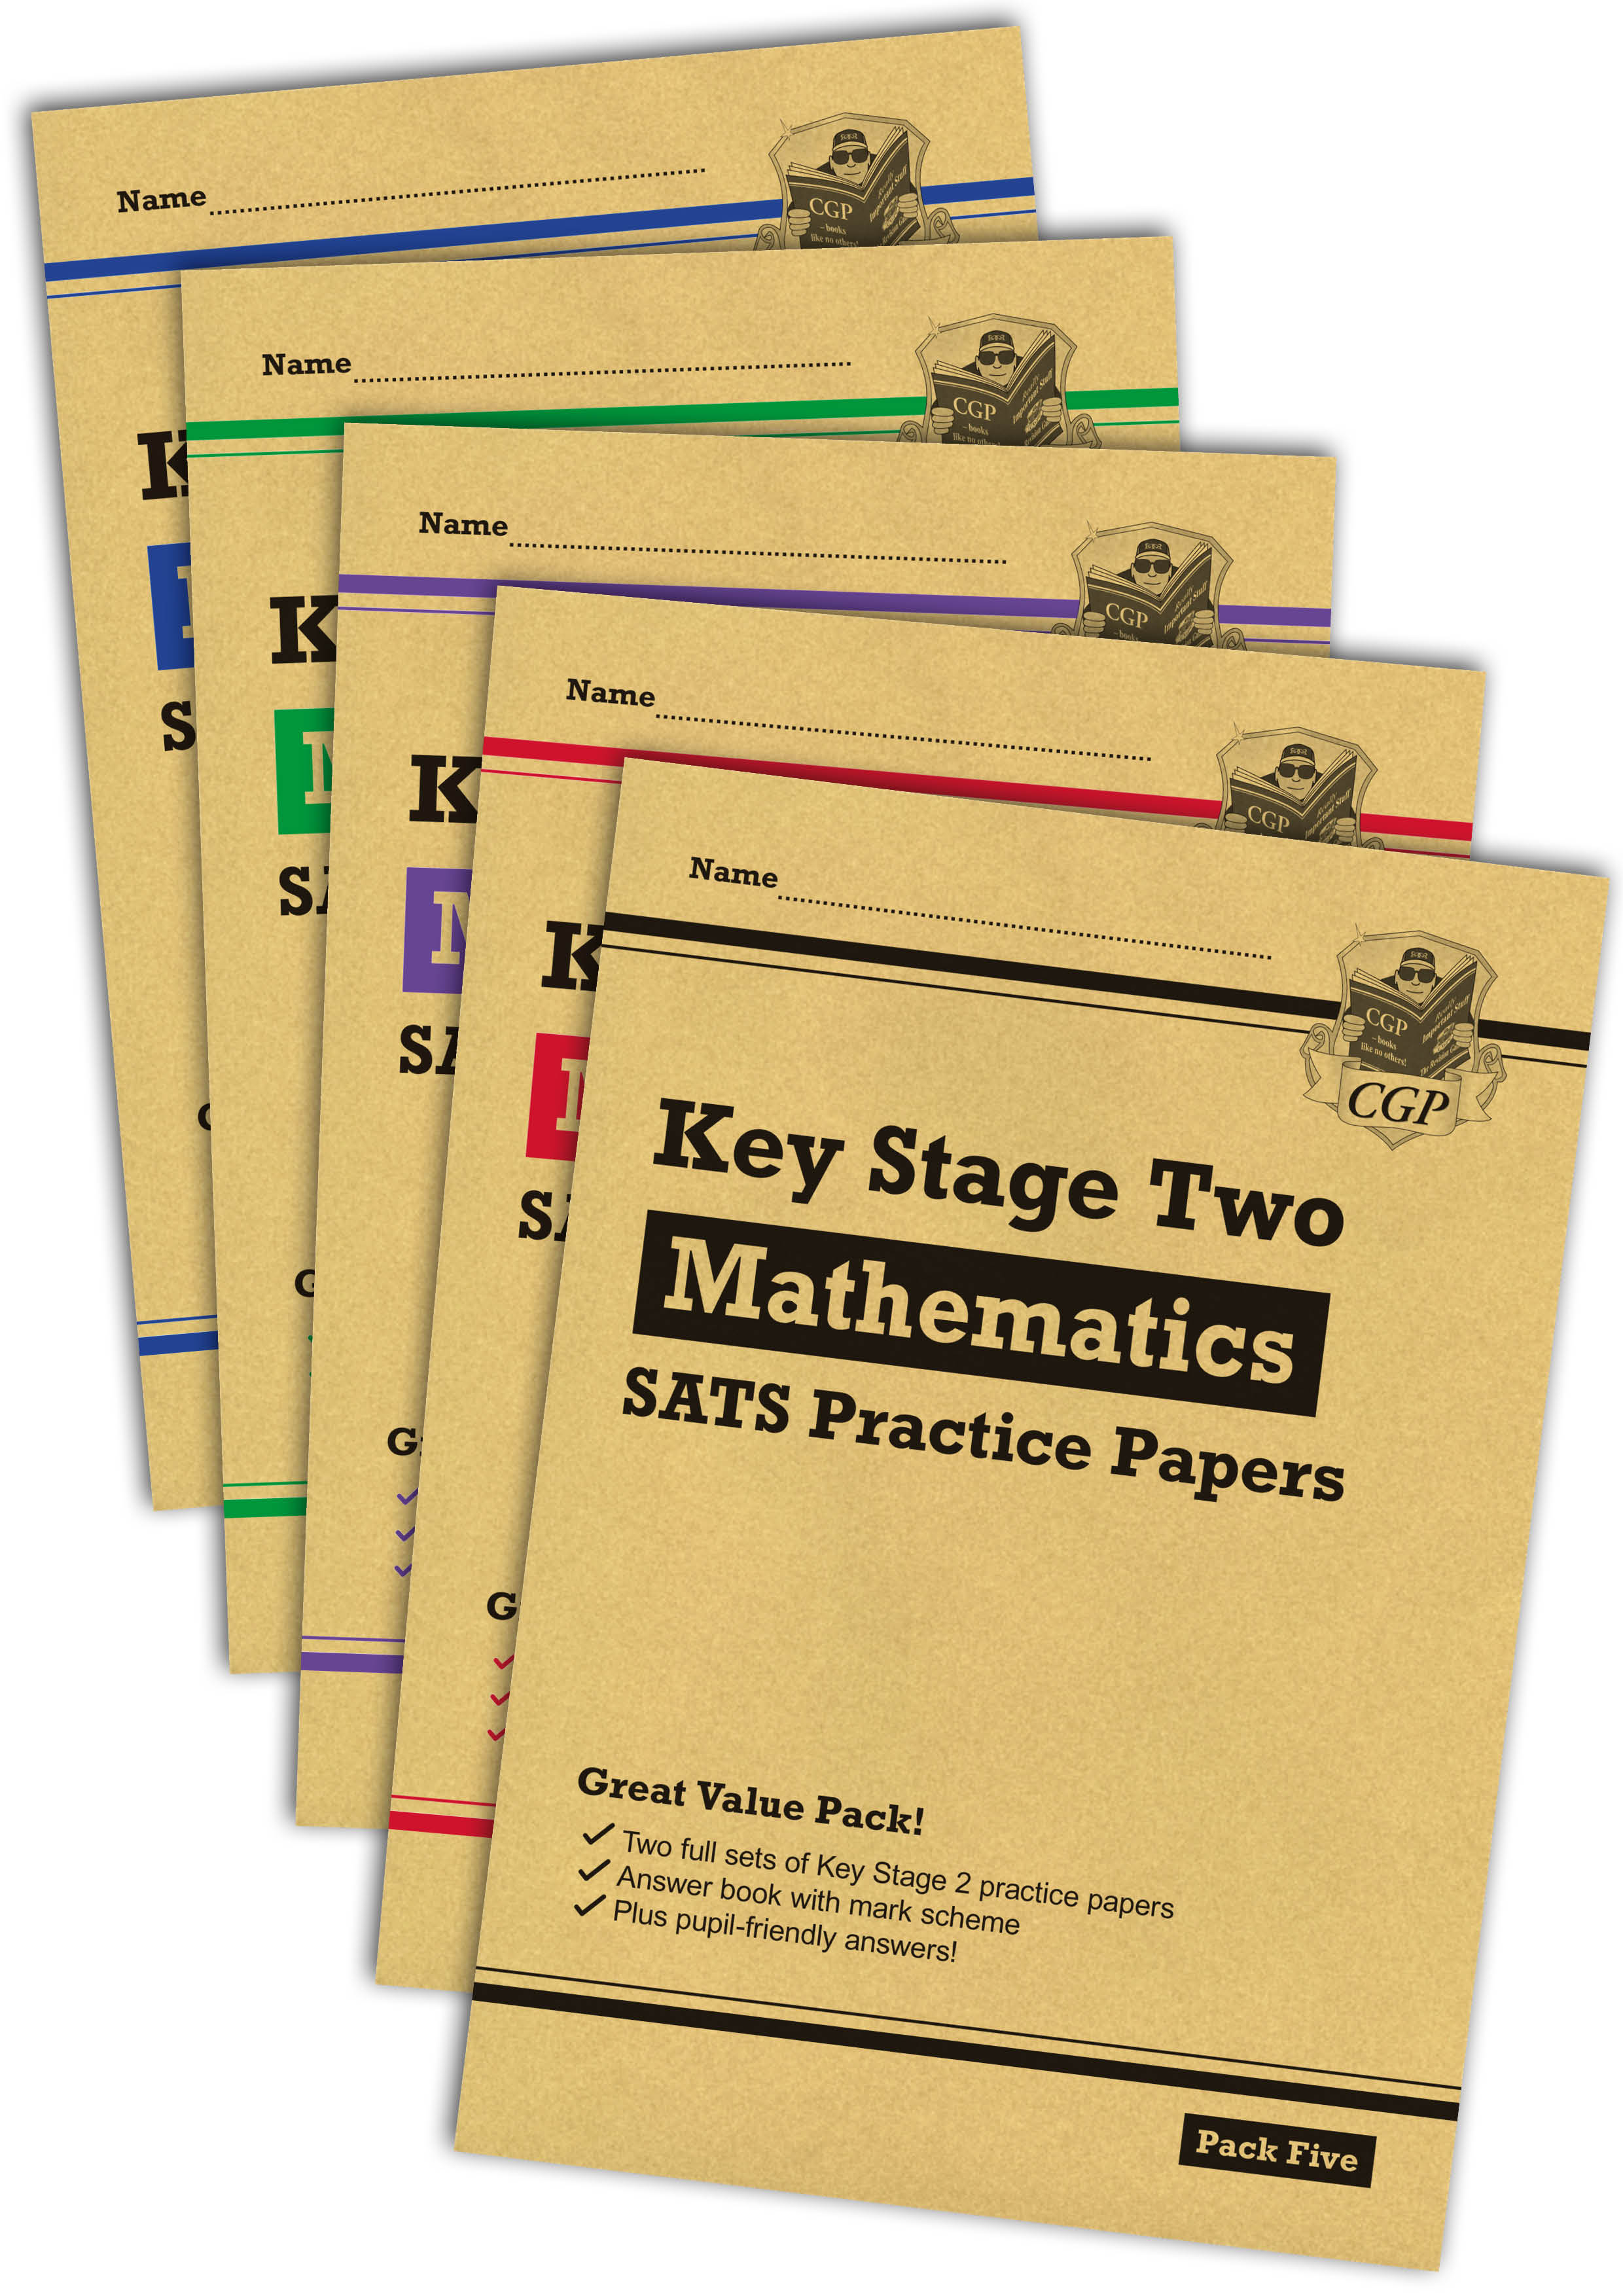 New KS2 Maths SATS Practice Paper Bundle: Packs 1, 2, 3, 4 & 5 (for the  2020 tests)